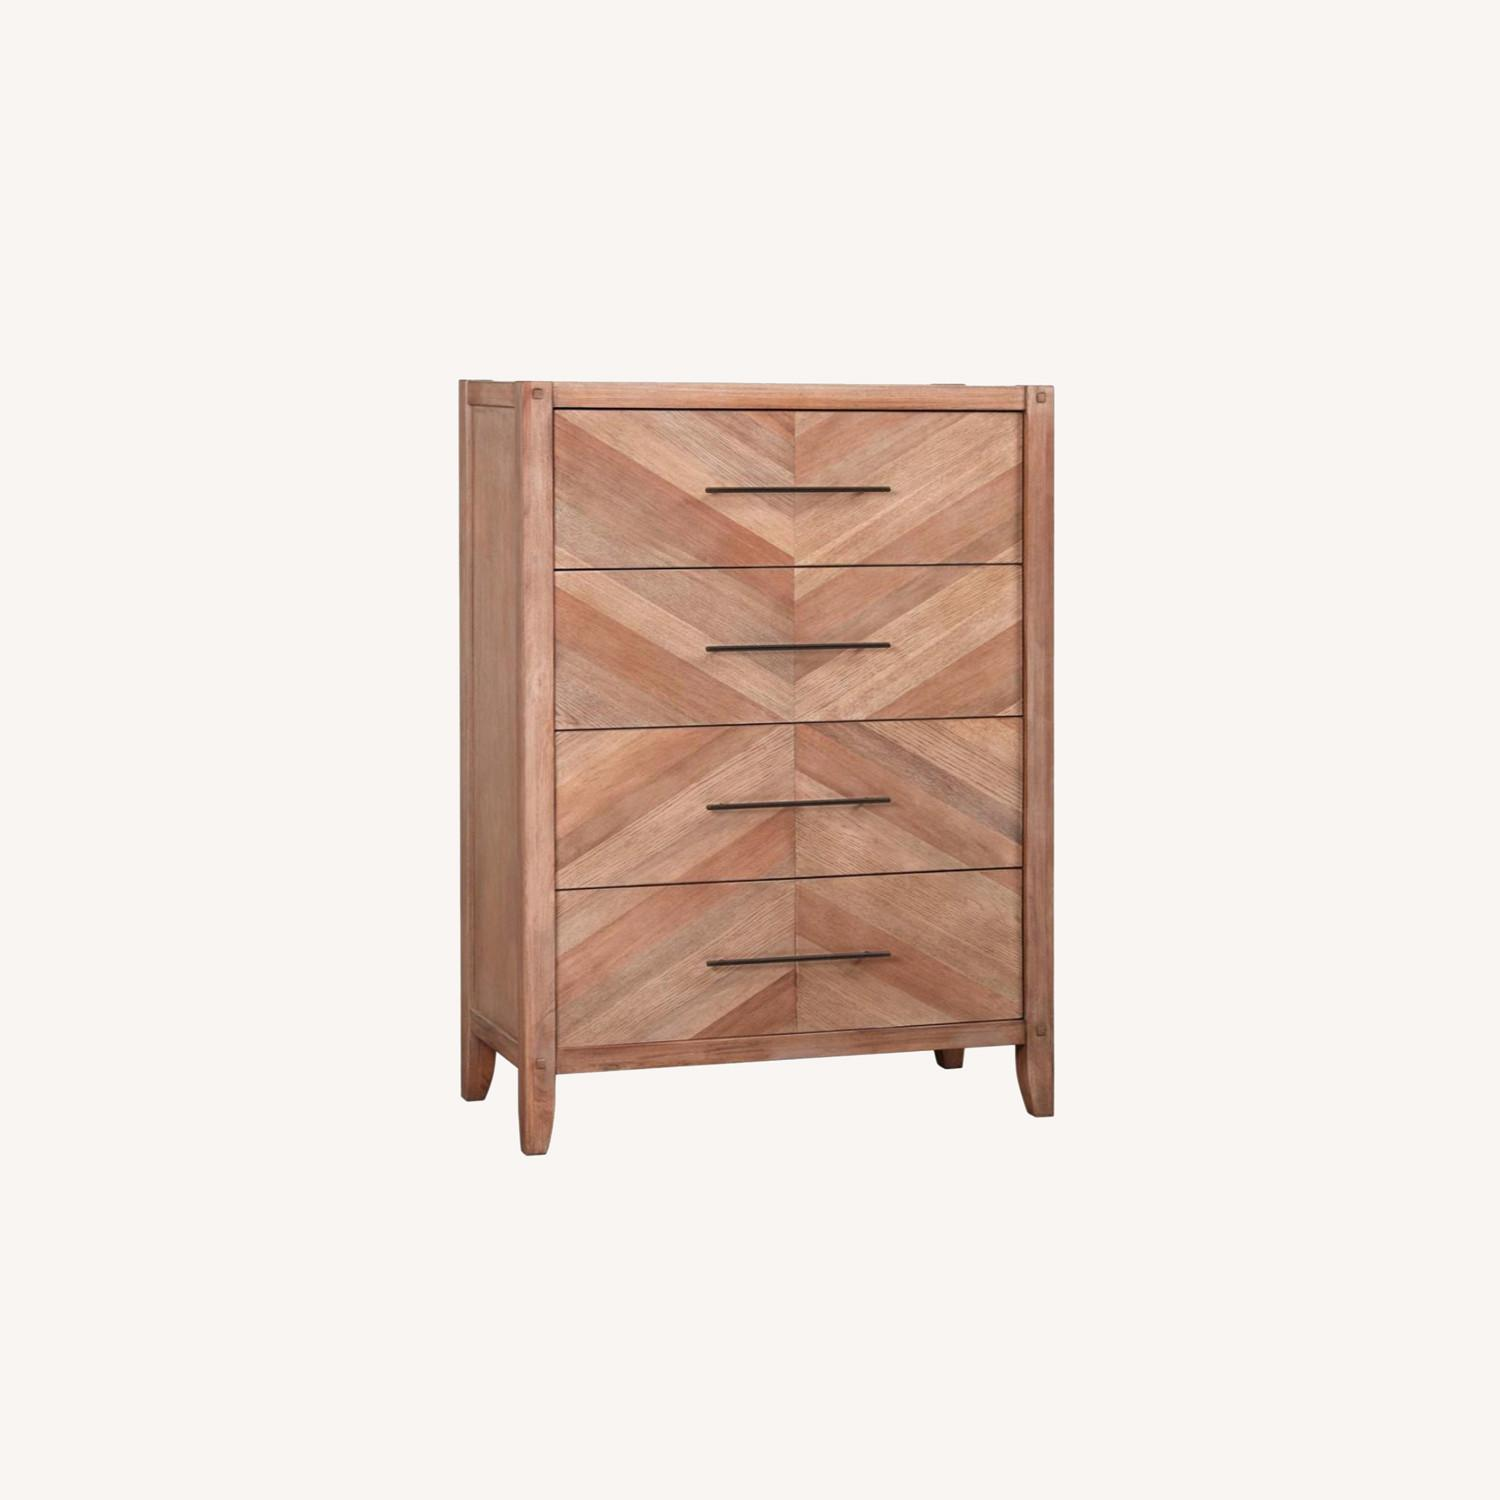 Chest in White Wash Natural Finish w/ Long Handles - image-7